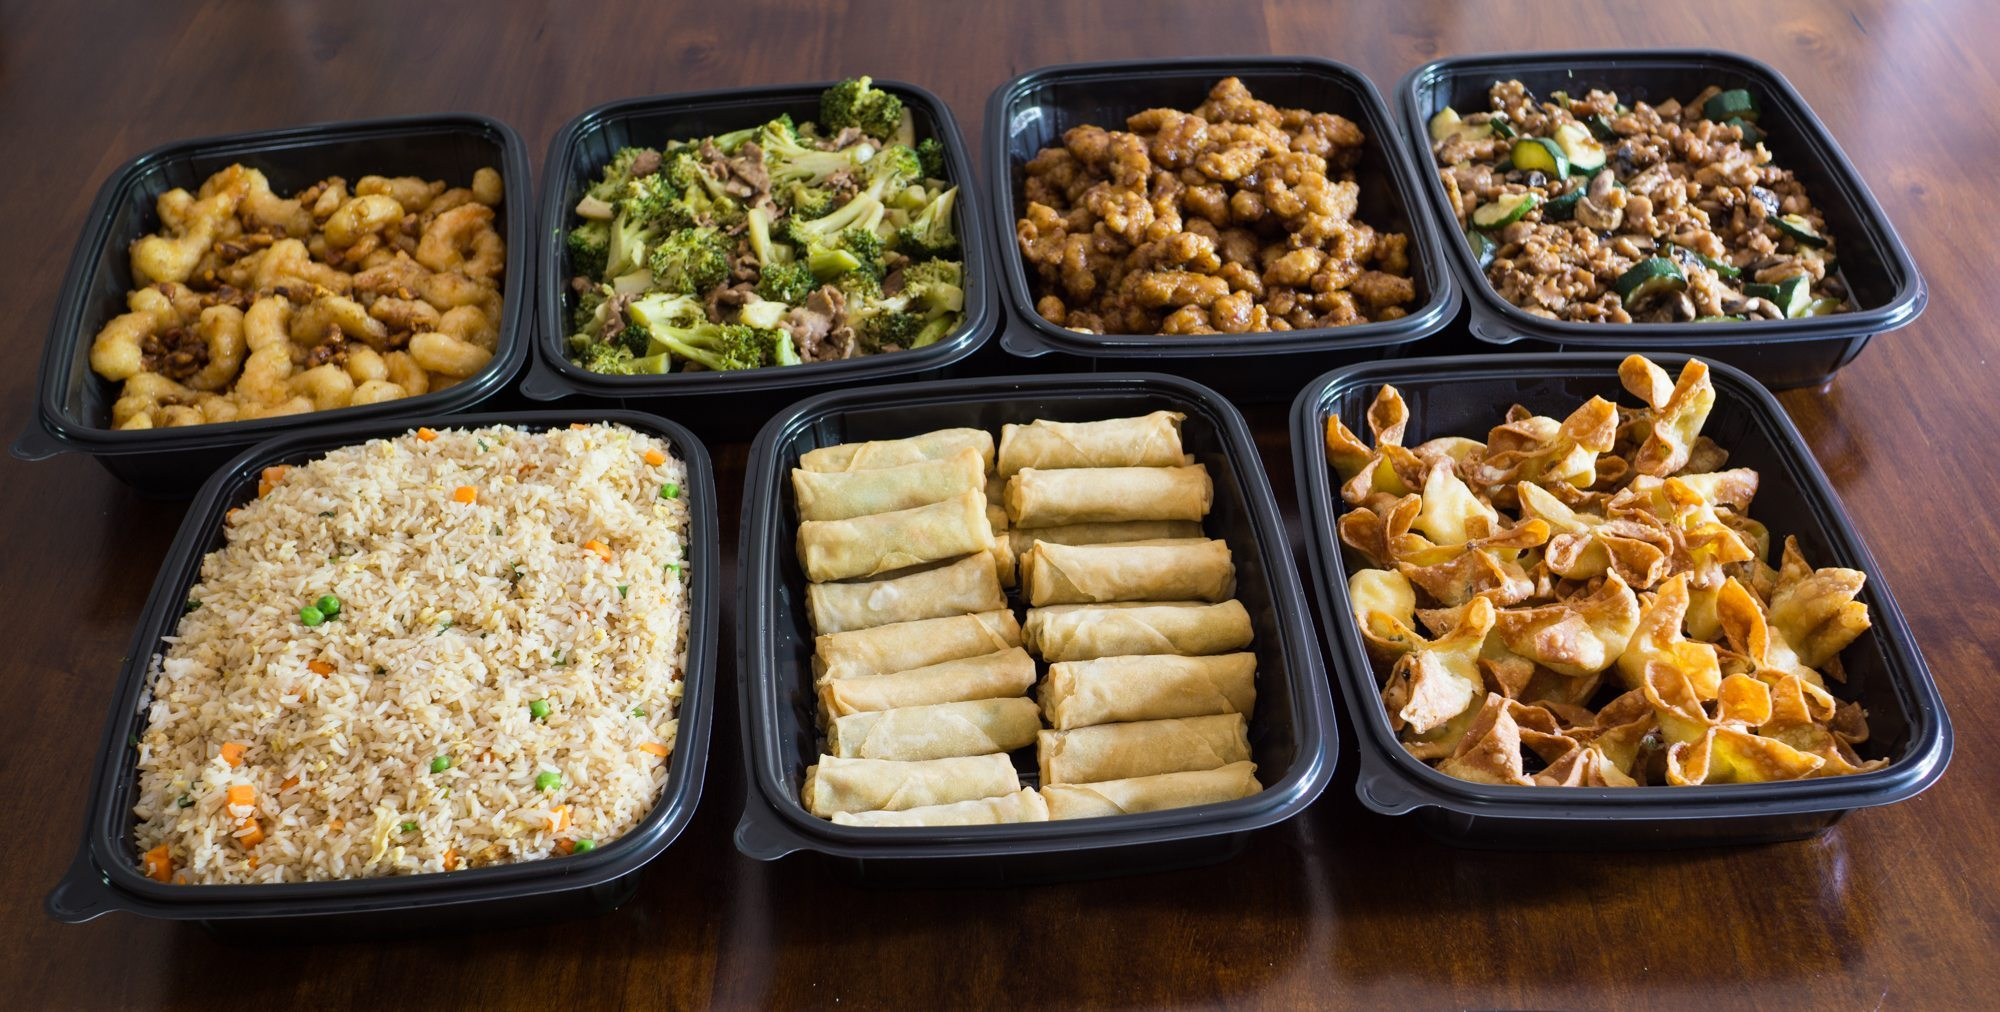 Panda Express menu prices and items are generally listed by category (chicken, seafood, meat, sides, etc). In the store, patrons can choose prepared dishes, combos, or create their own dishes. And, if you have an event in your future, try Panda catering.